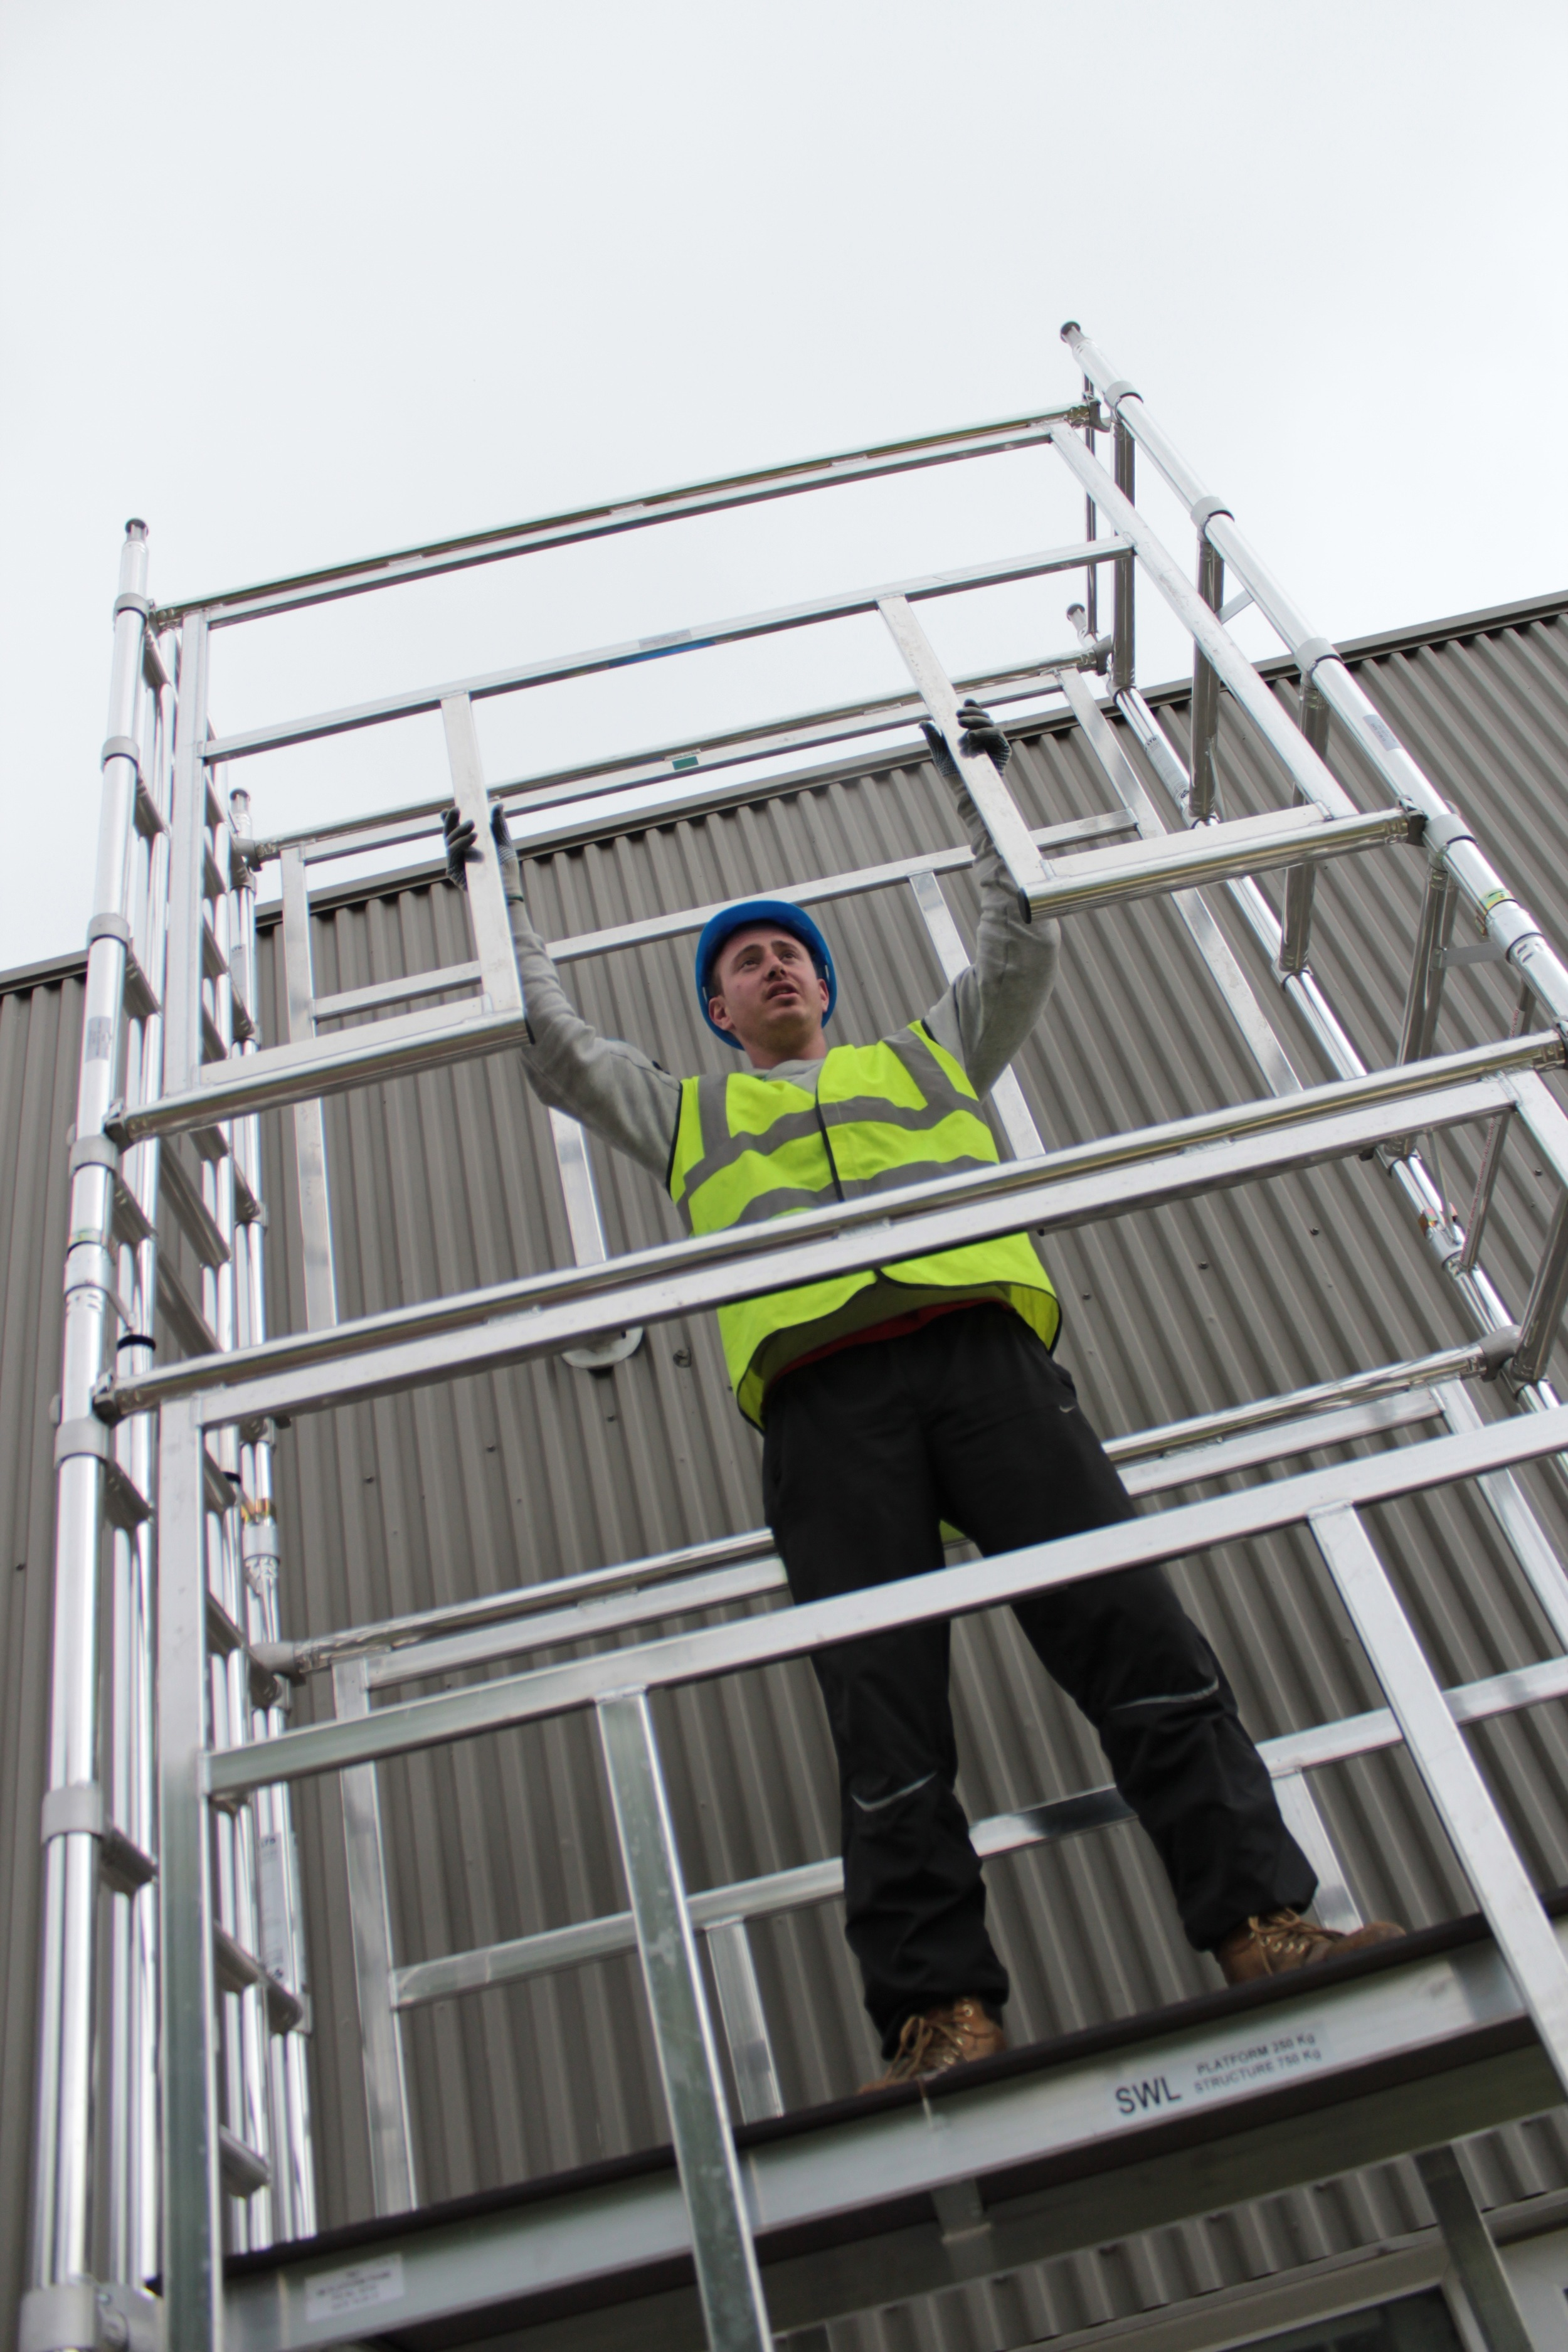 Aluminium Scaffold Tower, Euro Towers, 3T tower, Working at heights, euro 500, agr tower